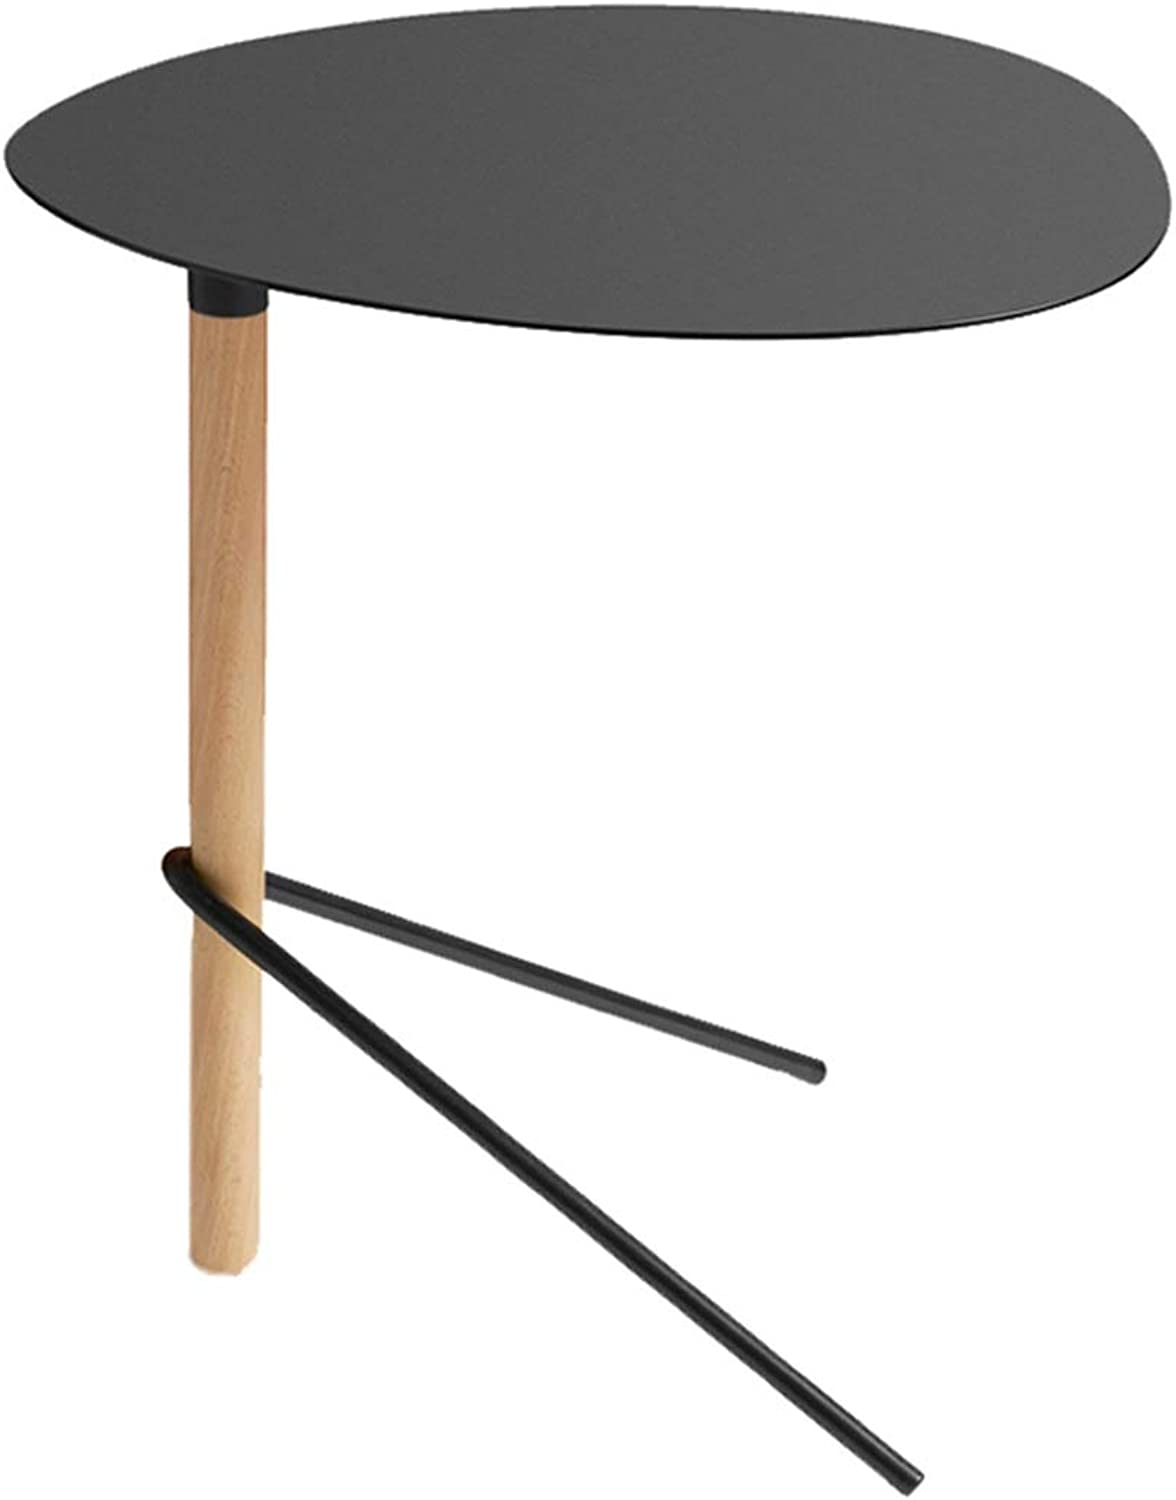 ZH Foldable Table Simple Side Table Bedroom Bedside Living Room Dining Table Sofa Balcony Corner Table Storage Side Black, 46x46x48cm